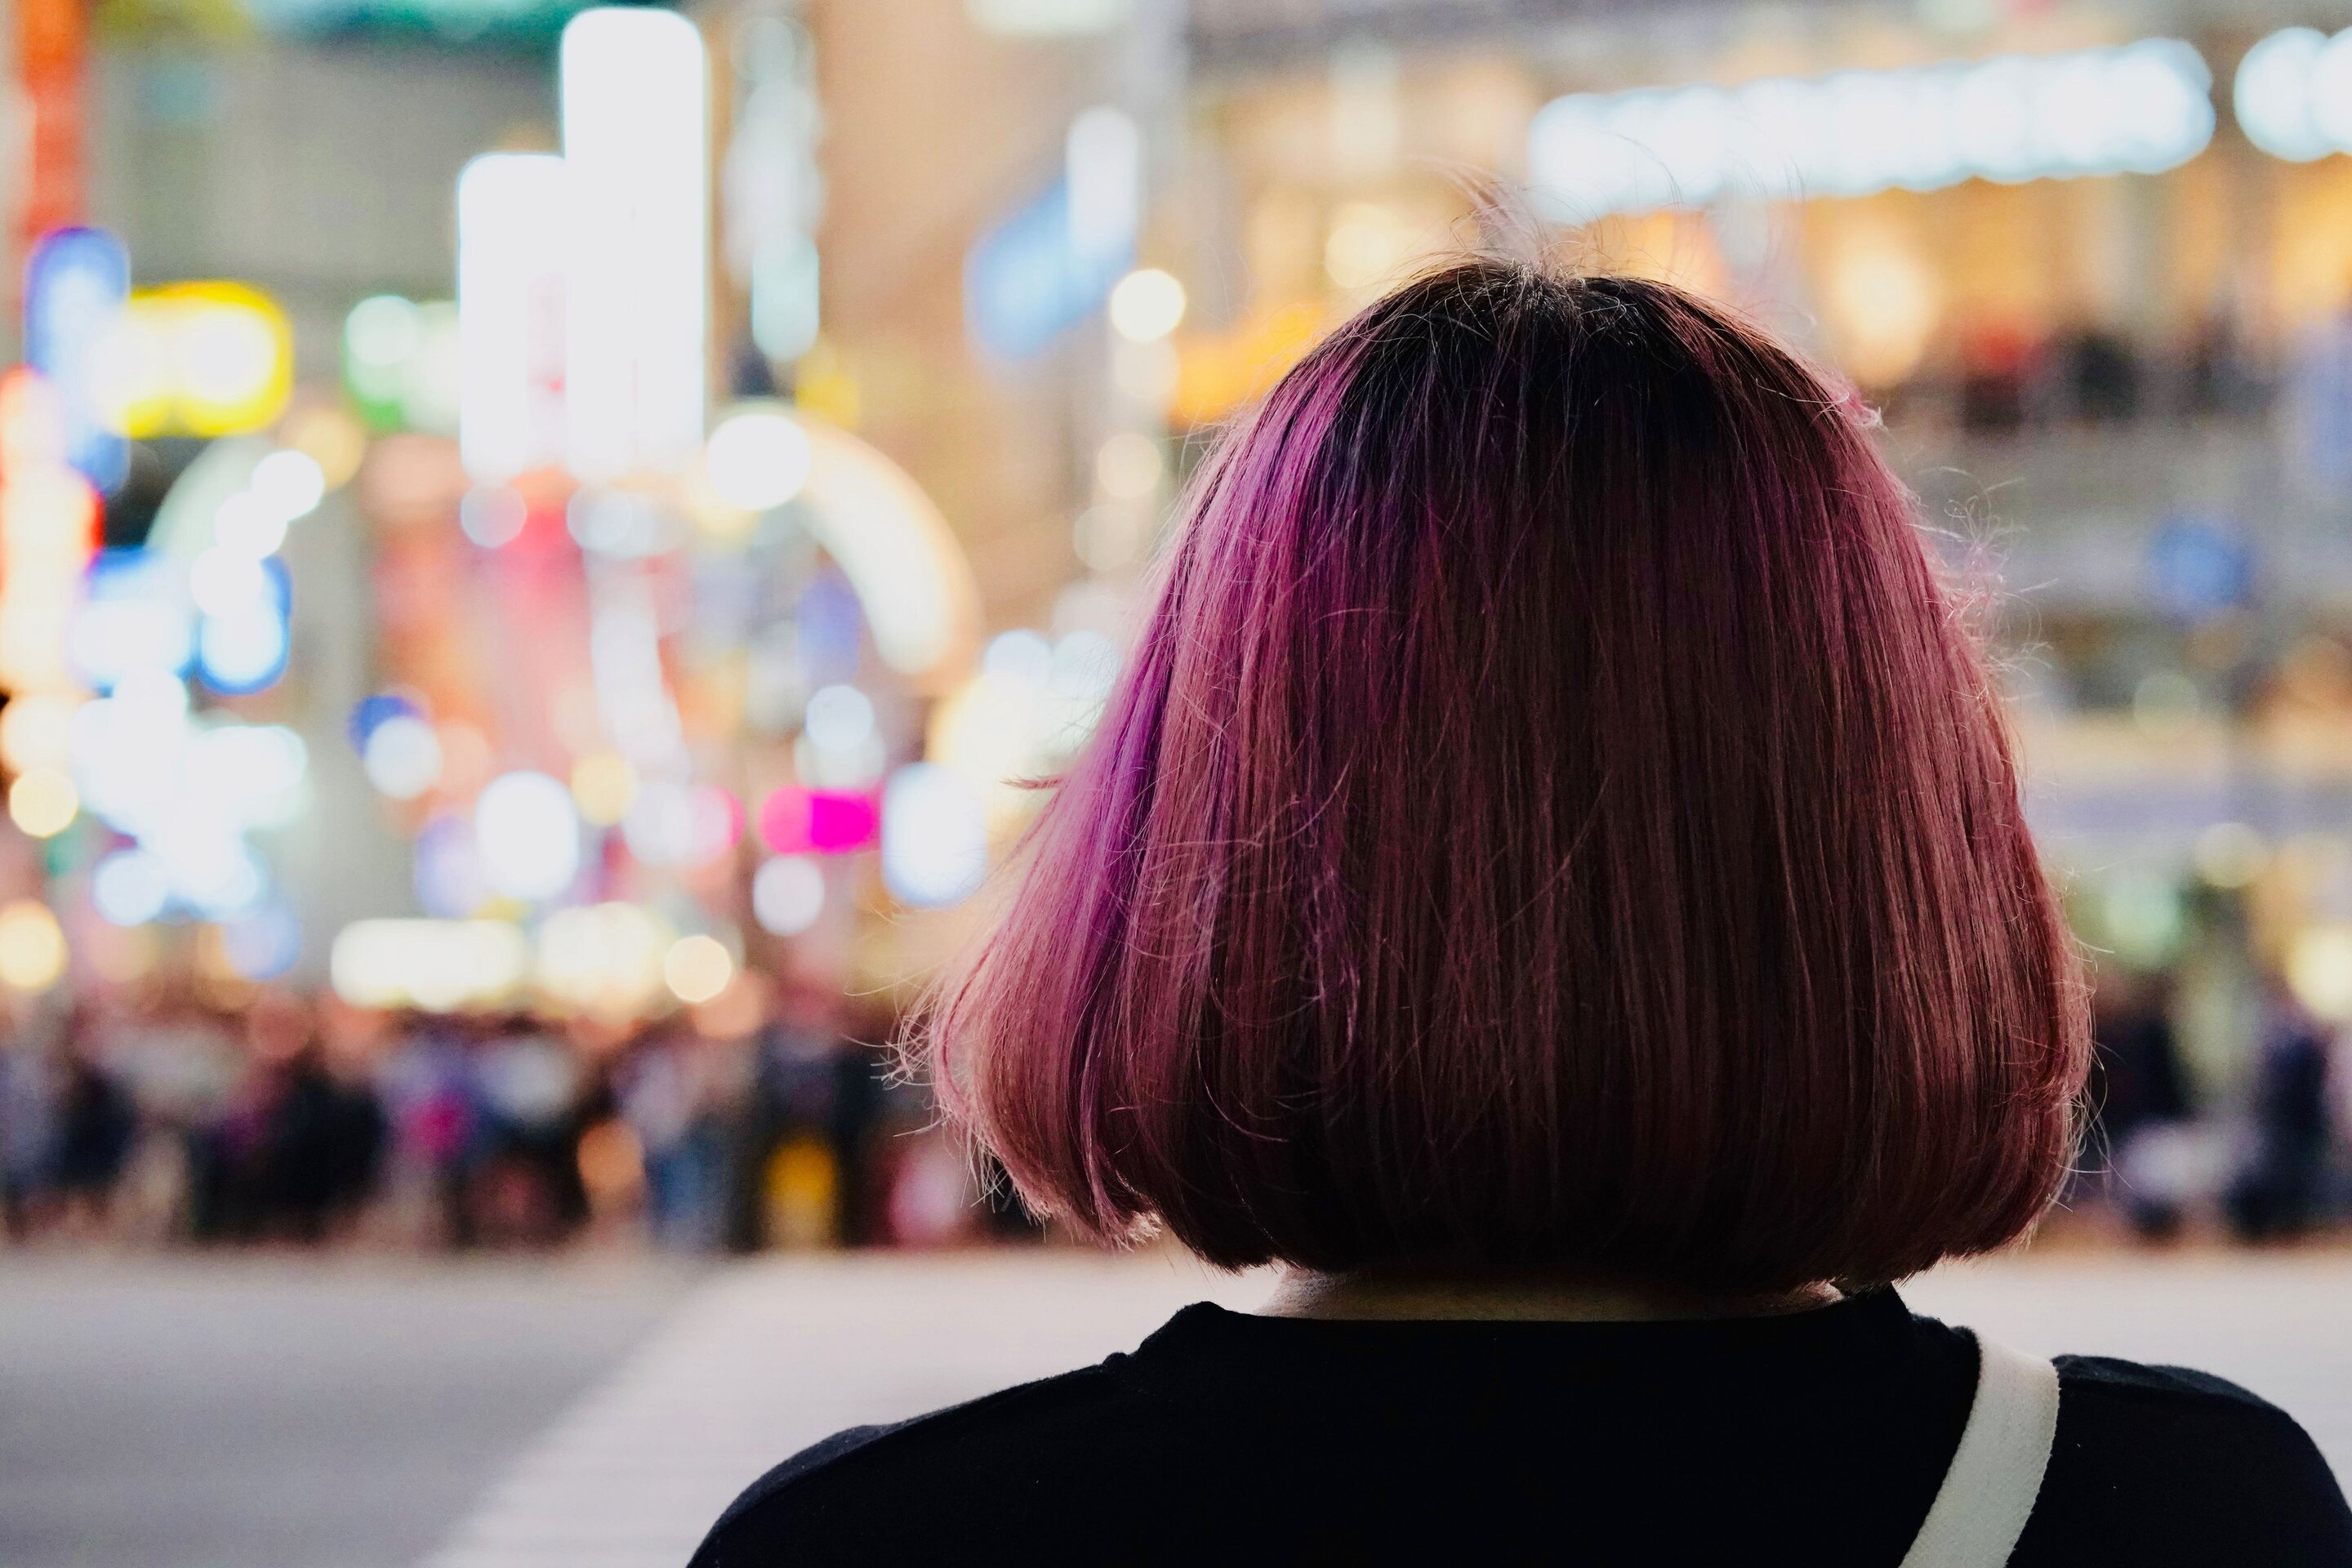 Personal use of permanent hair dye not associated with greater risk of most cancers or cancer death: study - Medical Xpress